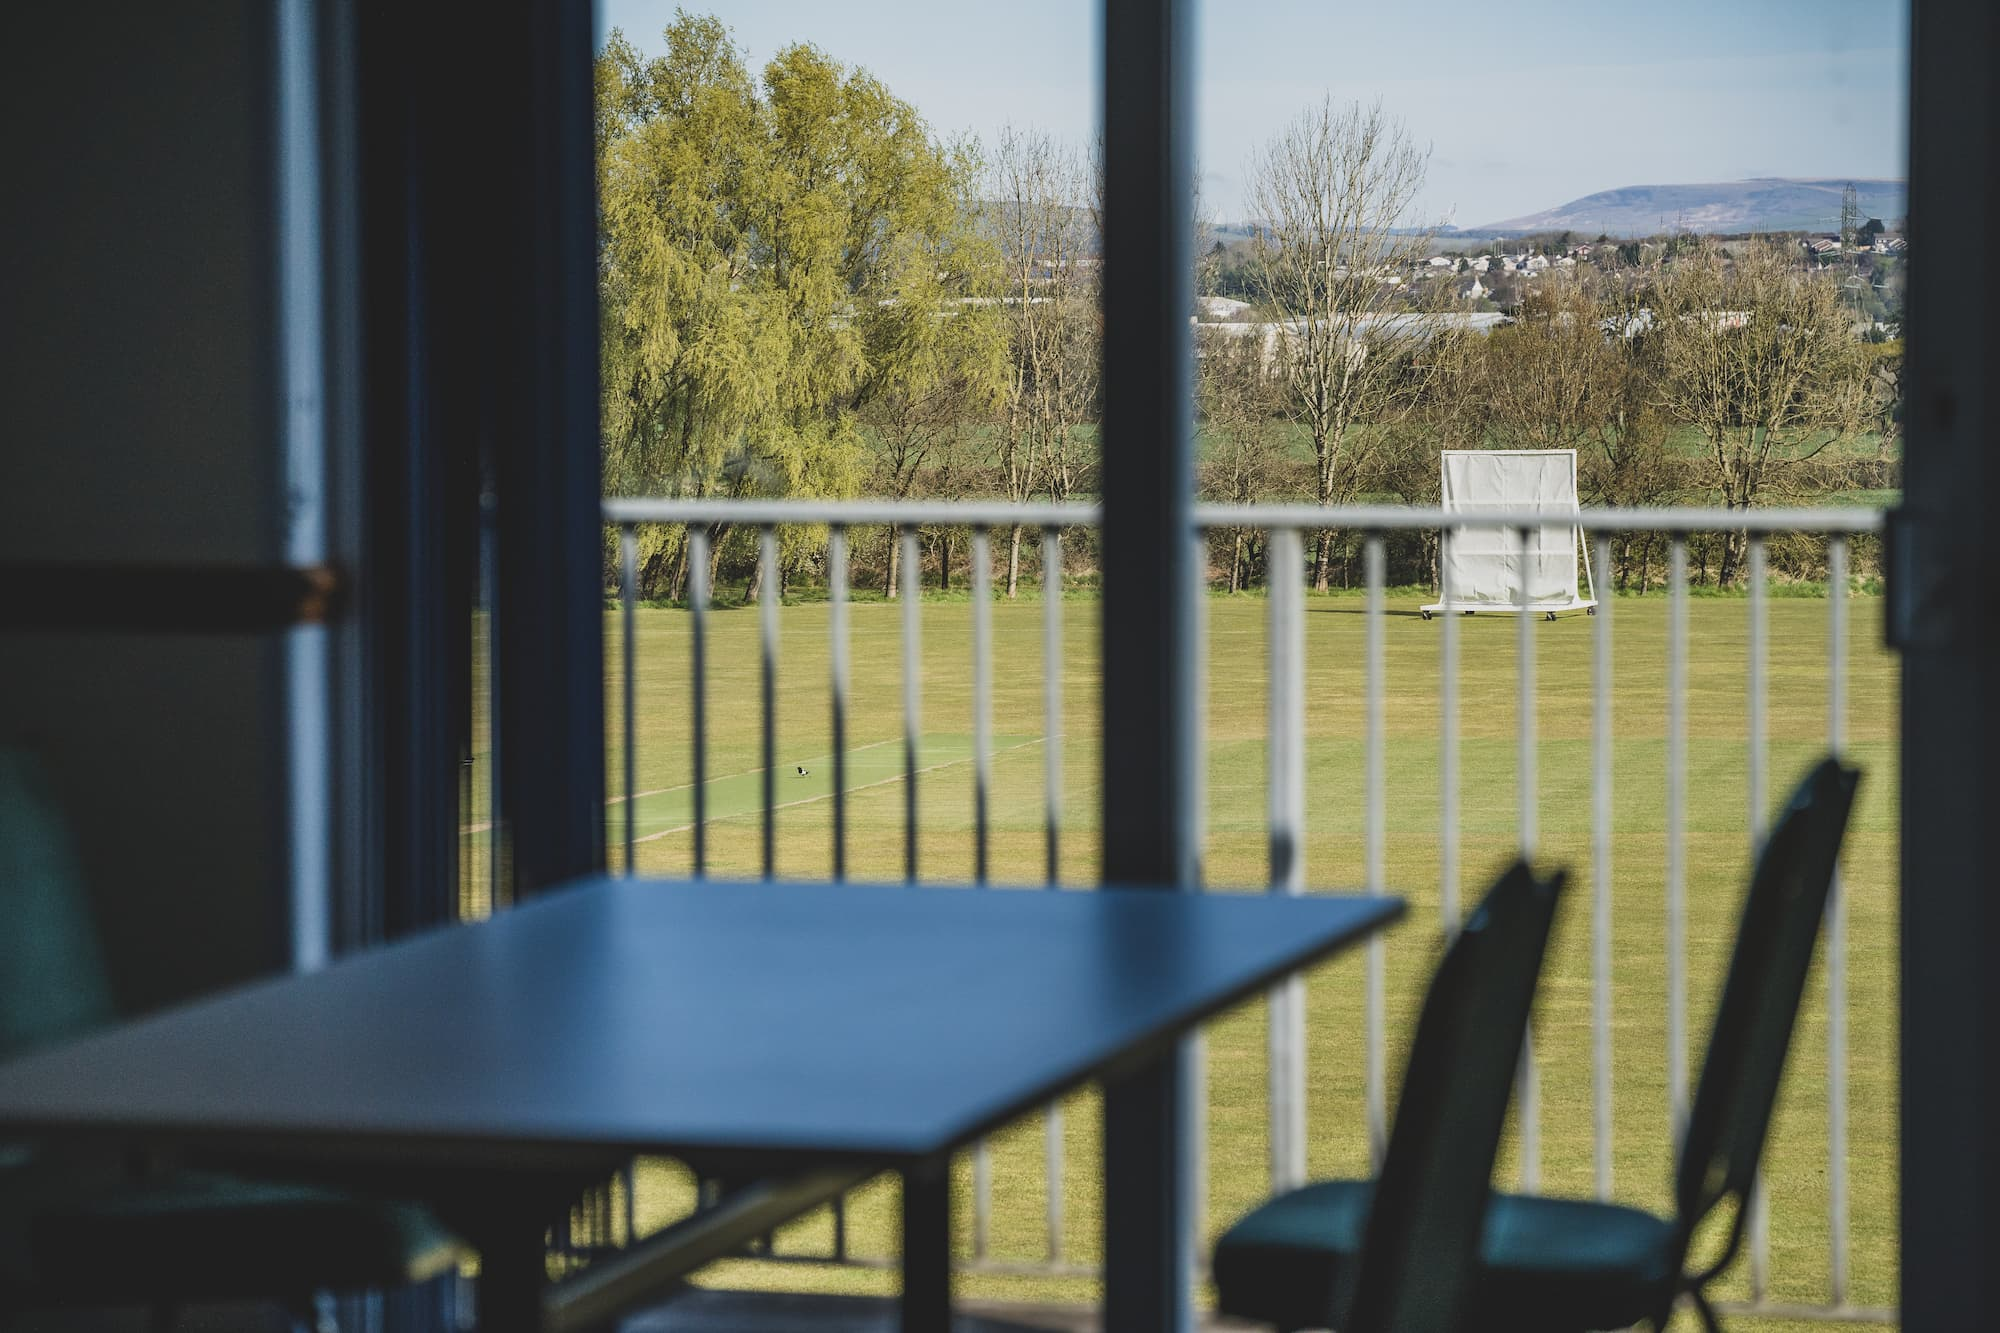 A table and set of chairs next to an upstairs window overlooking the cricket field.